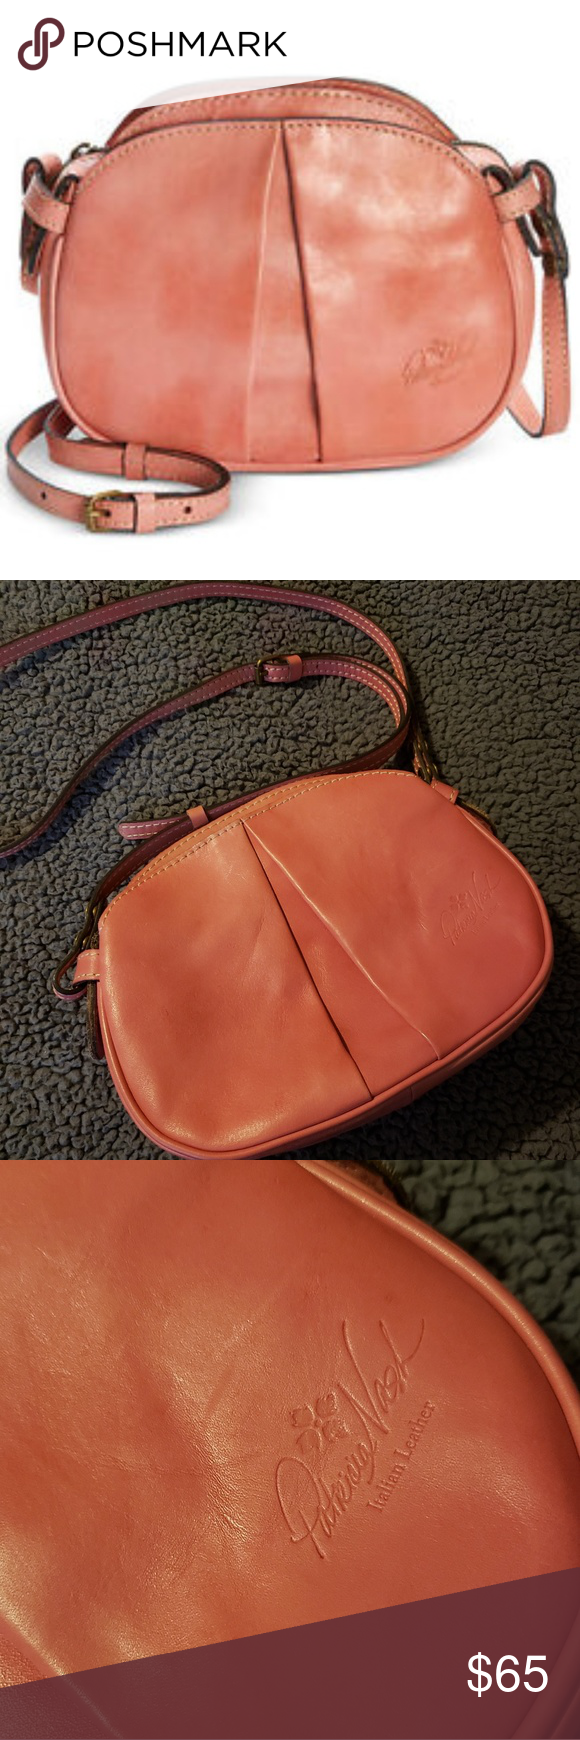 2e742b654 Patricia Nash Chania Crossbody Bag Color - Blush Pink 100% Italian Leather  Crossbody